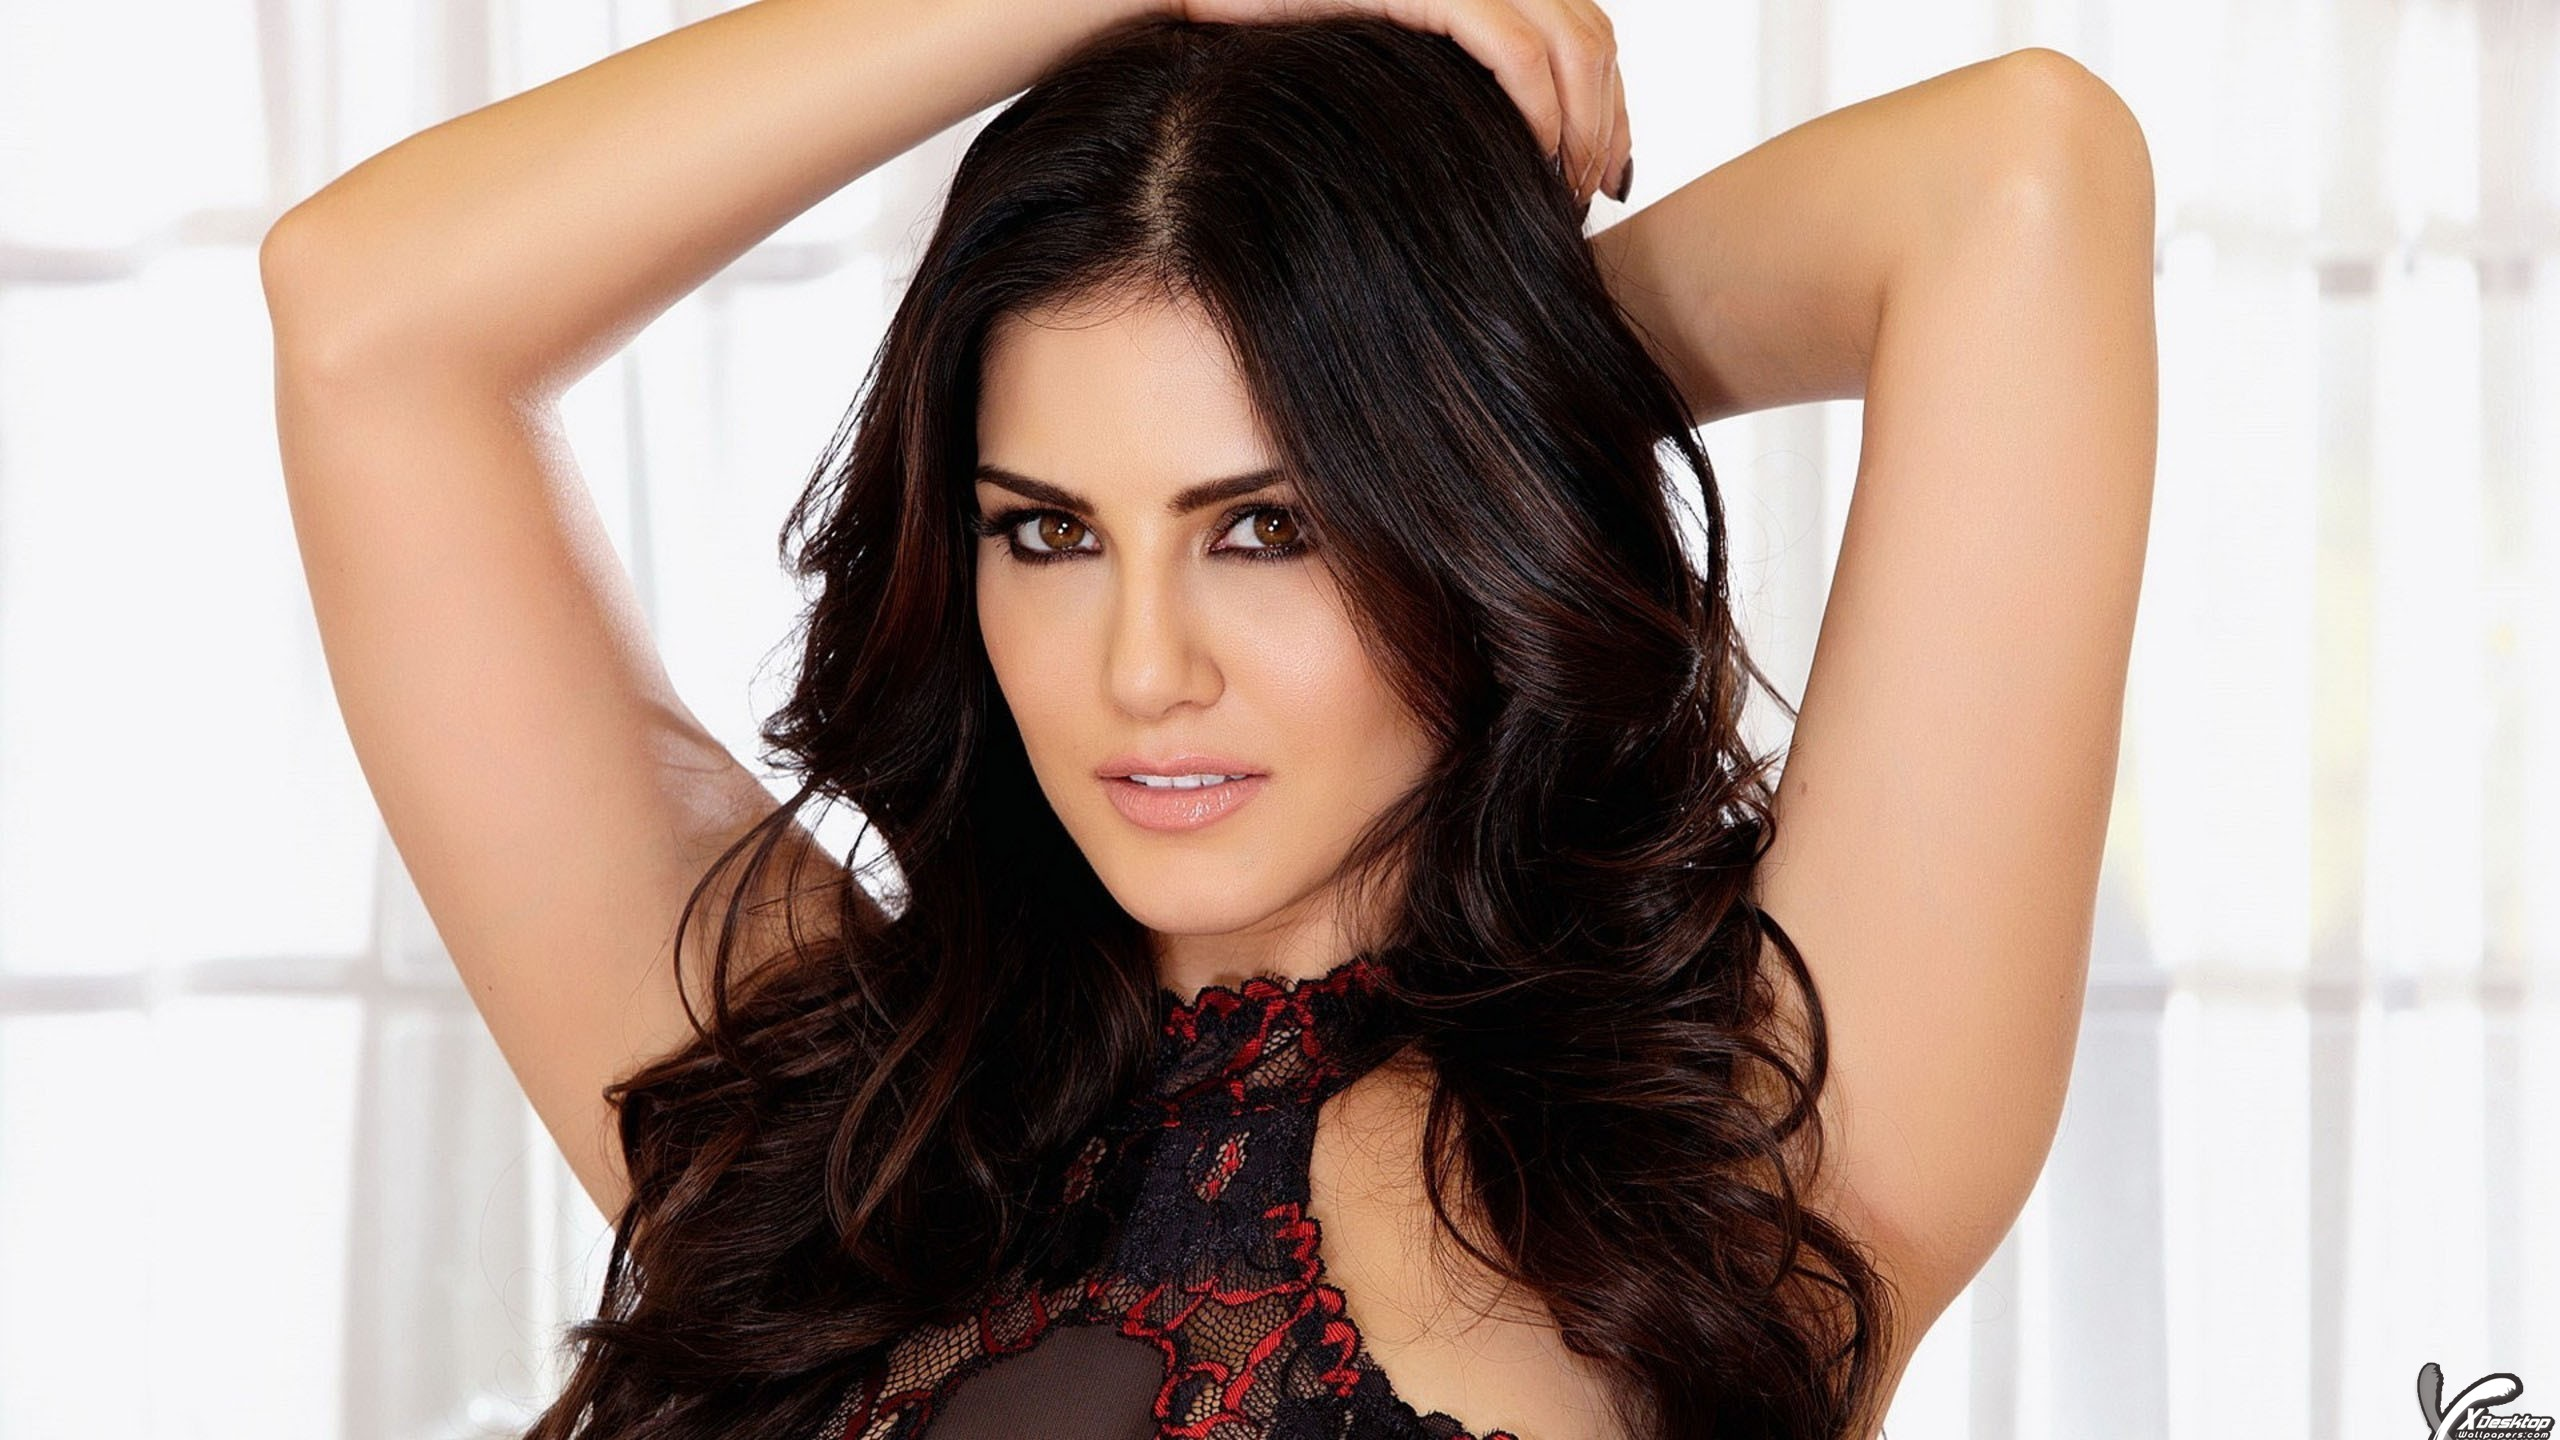 Sunny leone hd wallpapers 2014